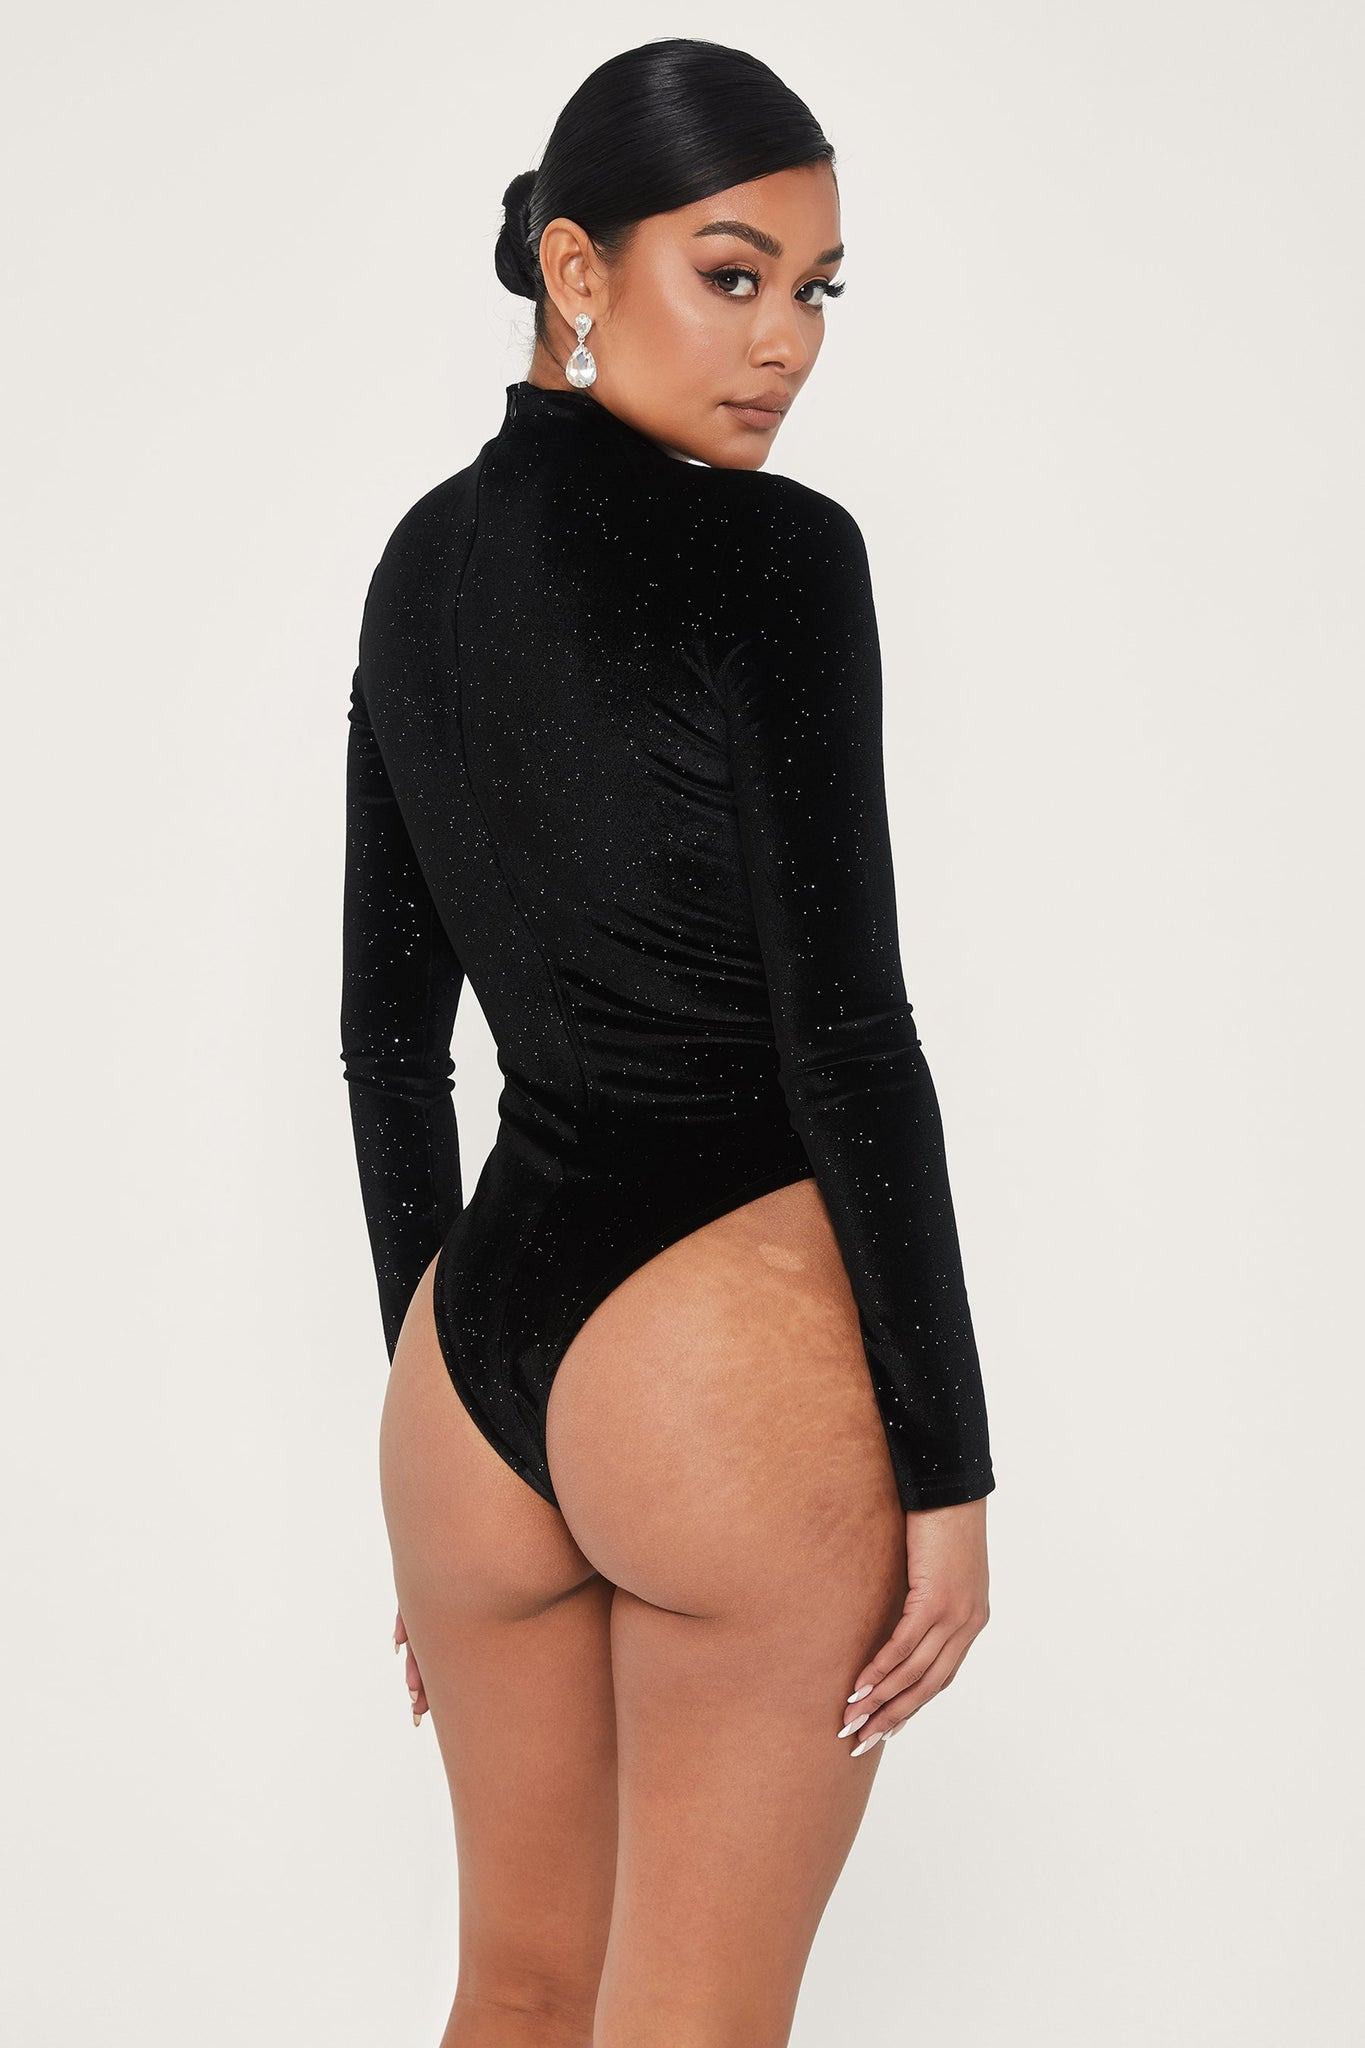 Grecia Velvet High Neck Bodysuit - Black - MESHKI